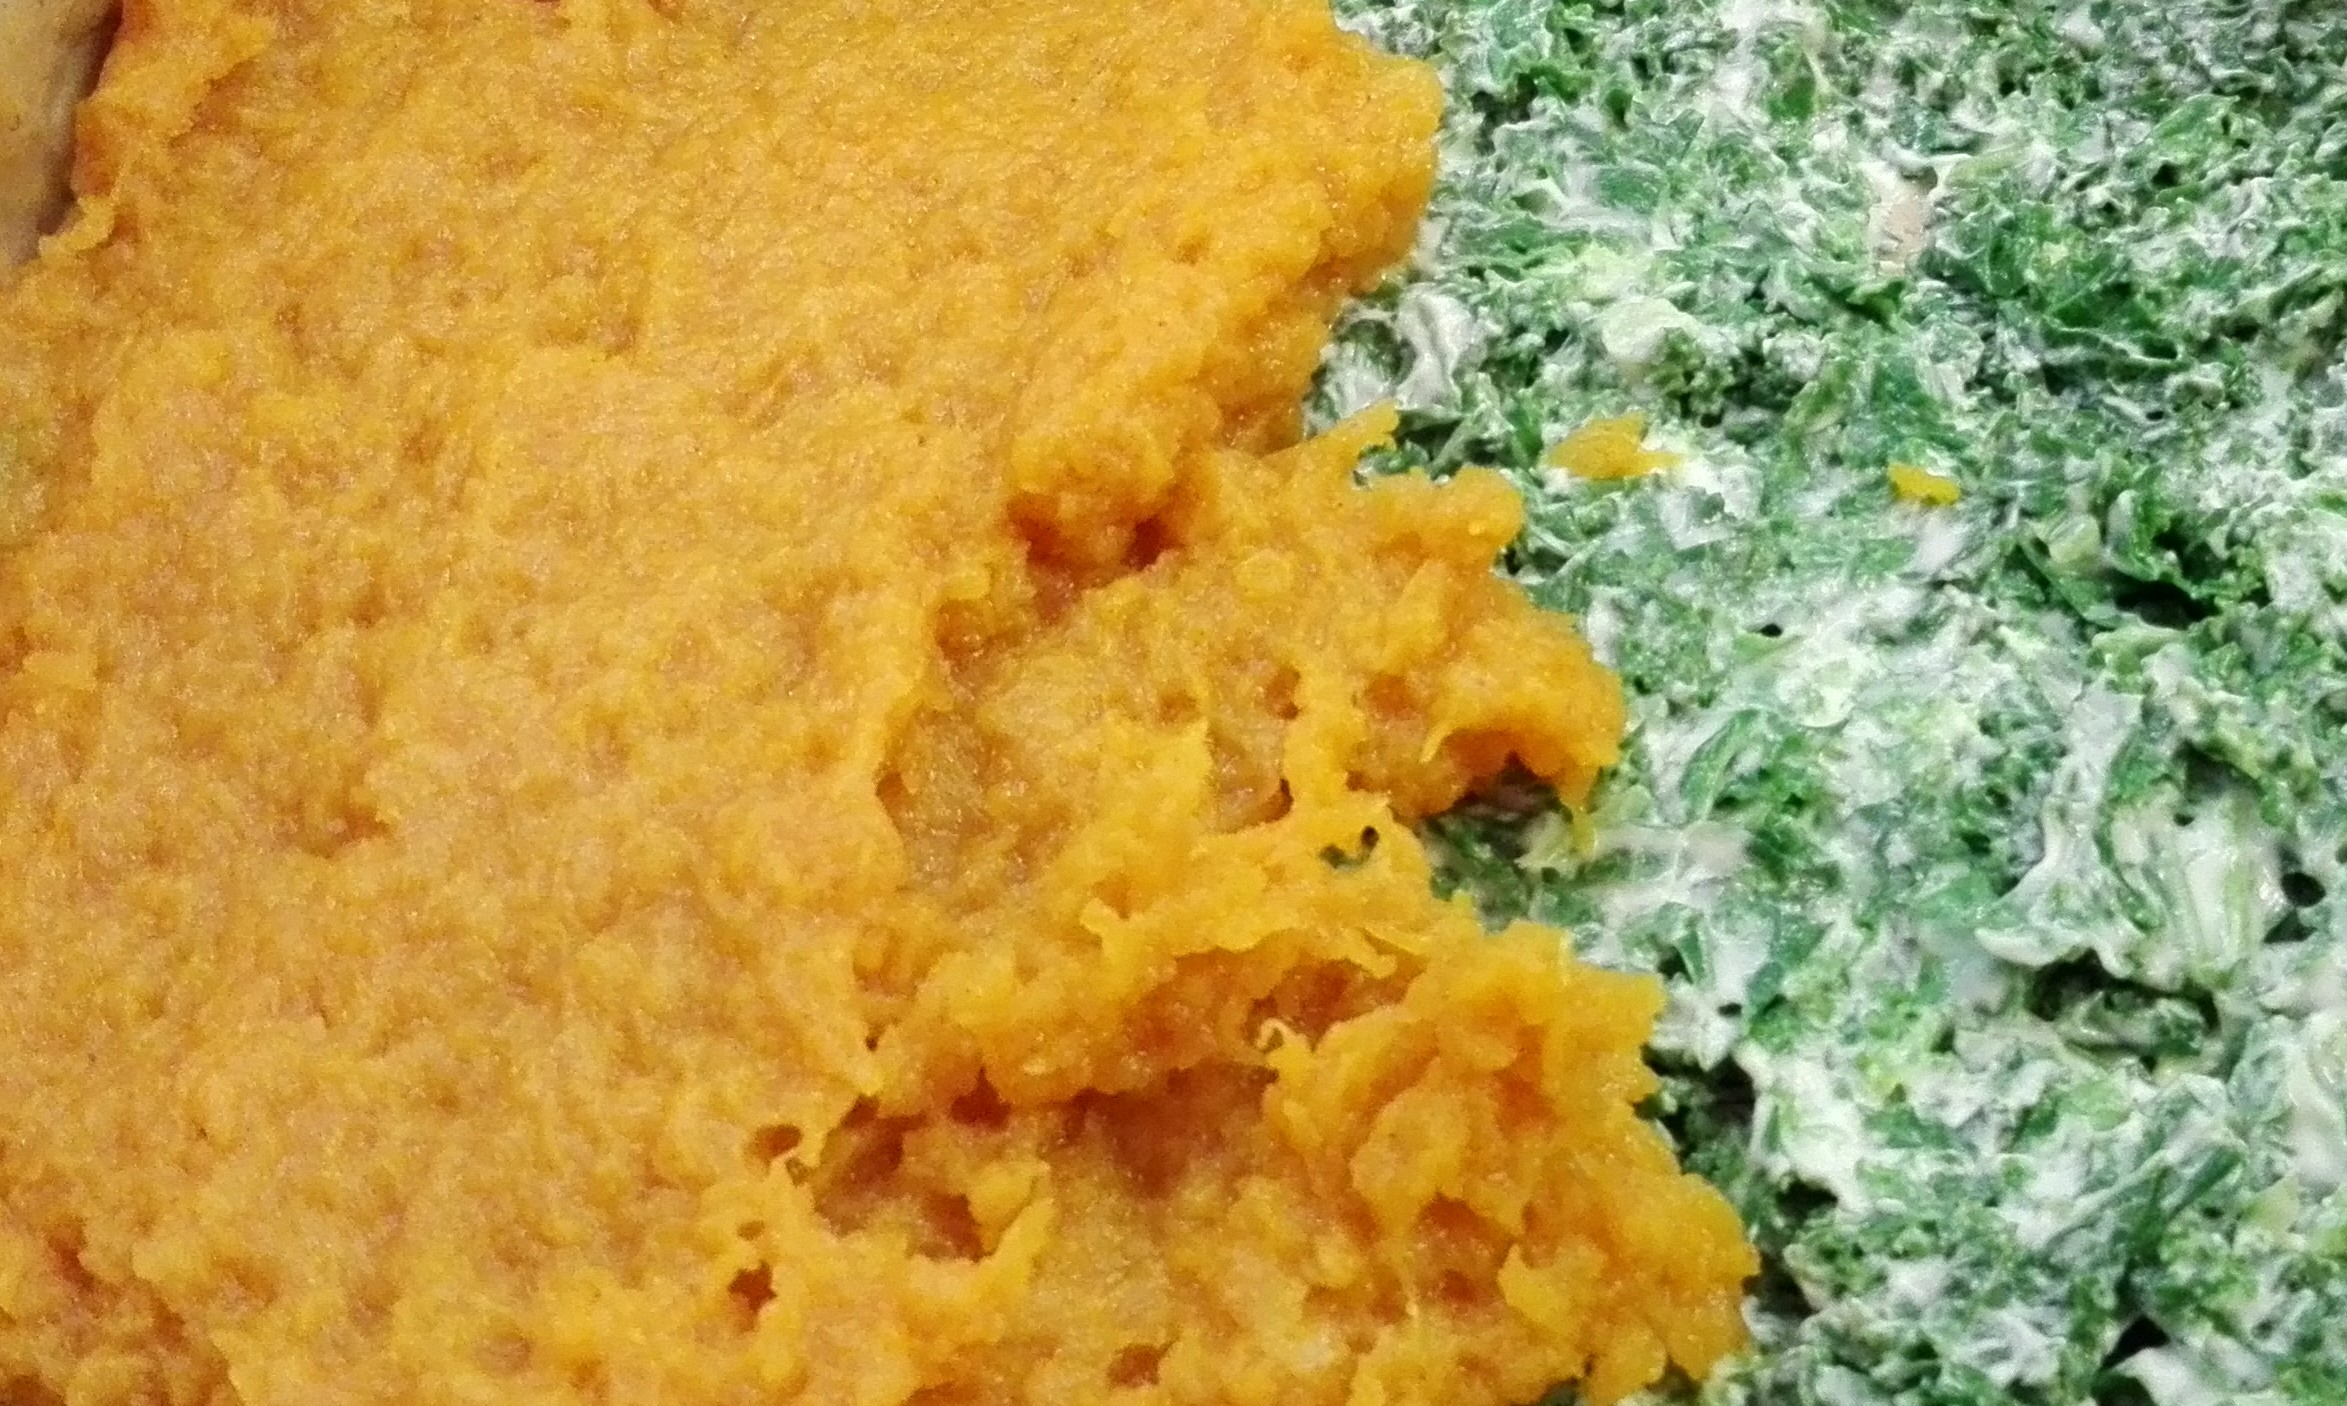 Butternut Squash Pie with Kale and Goat Cream Cheese - in the making